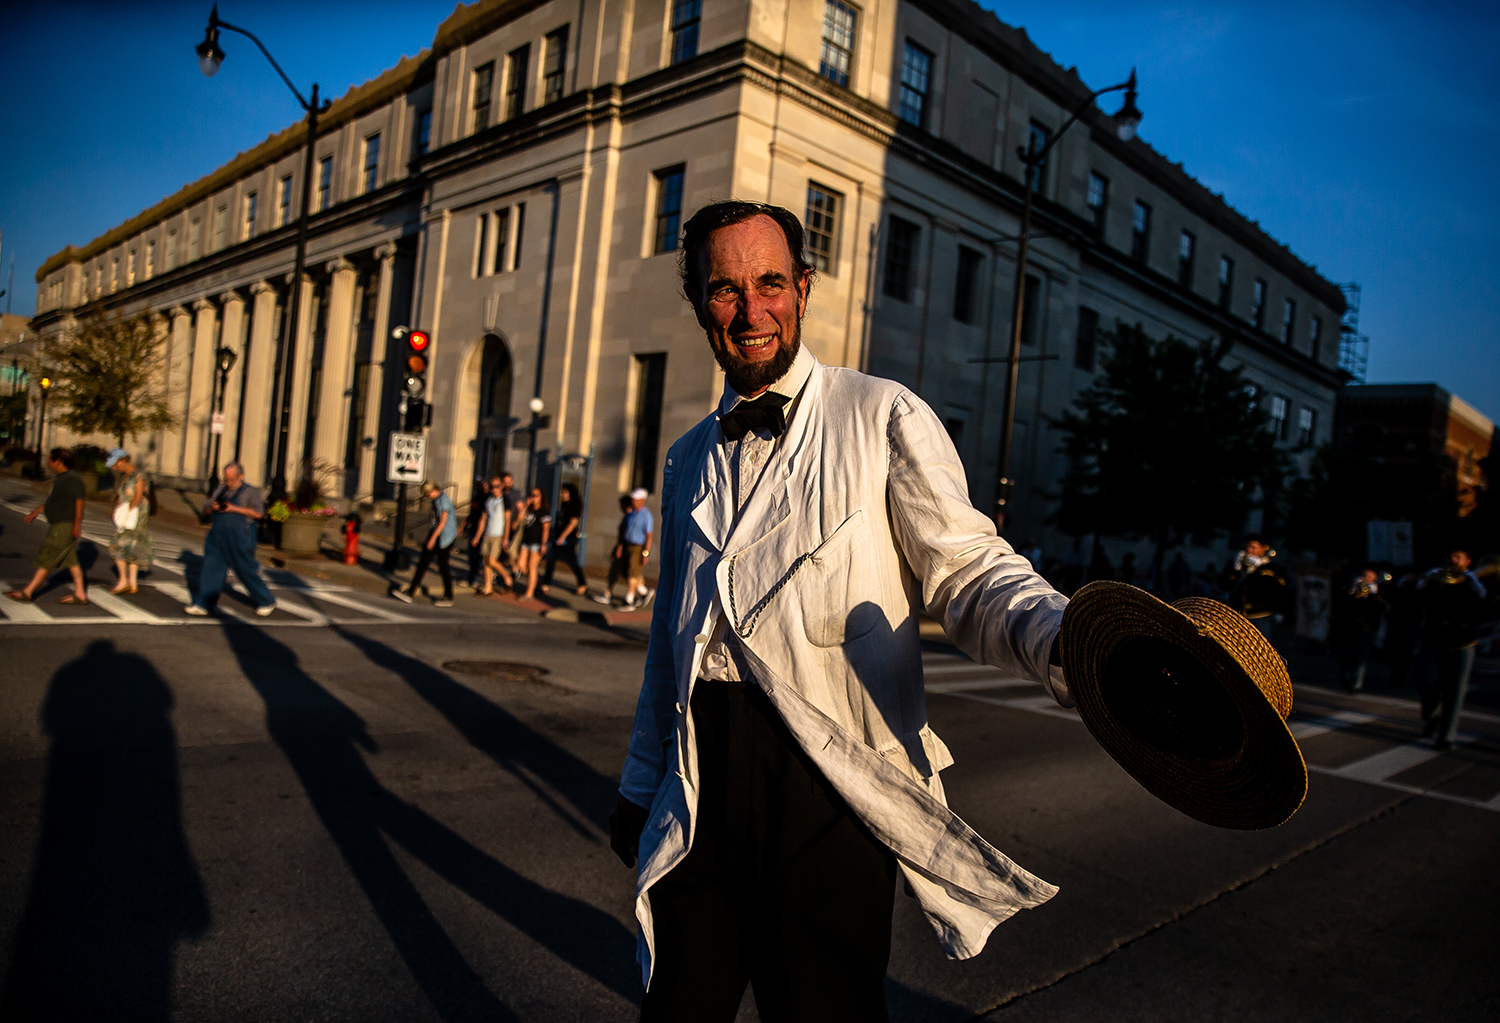 Fritz Klein portraying Abraham Lincoln heads up South Sixth Street being led by a  massive replica of a campaign ball during the Lincoln Wide Awake Parade, a re-enactment of an 1860 parade to support Abraham Lincoln's presidential candidacy, as they march with the Wide Awakes to the Old State Capitol from the Lincoln Home, Saturday, Aug. 4, 2018, in Springfield, Ill. The Wide Awakes, who wore black caps and black hats when they marched, got their name from a small group of young self-named supporters who impressed Lincoln at a political rally, according to the Journal of American History. [Justin L. Fowler/The State Journal-Register]